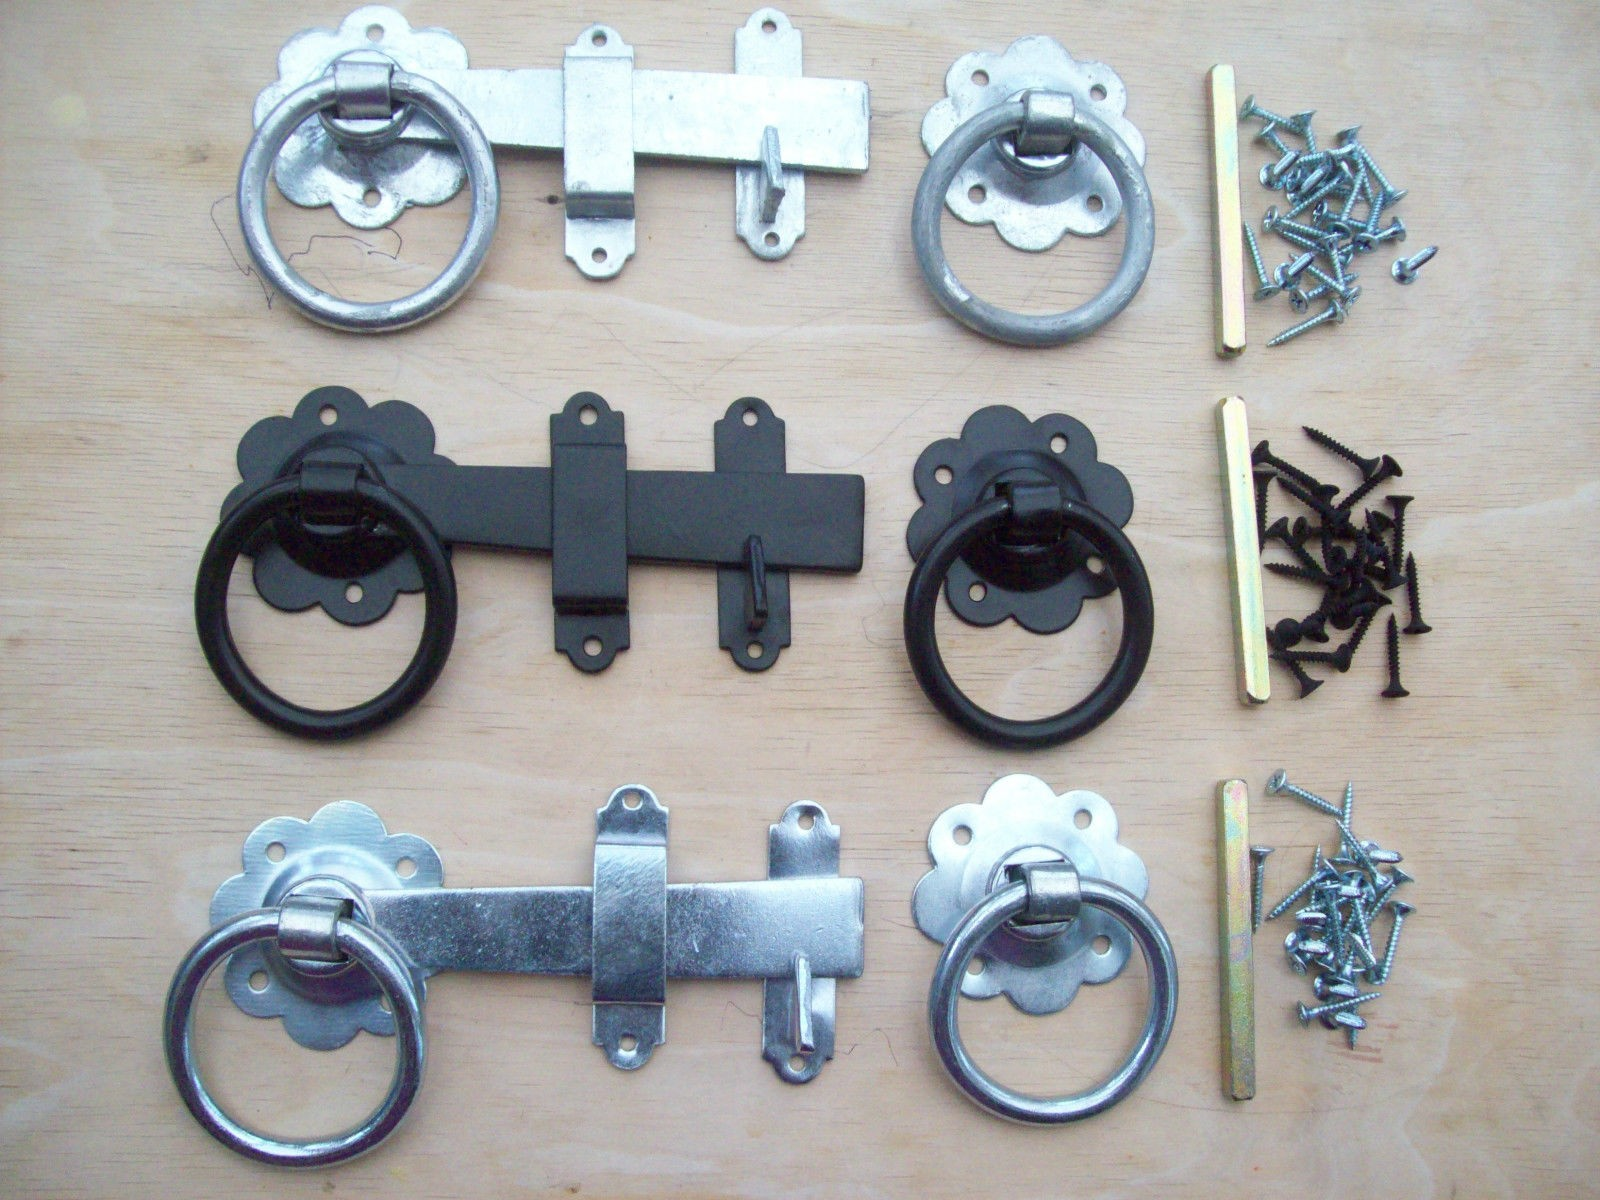 6 Inch Ring Gate Latch Set Ironmongery World